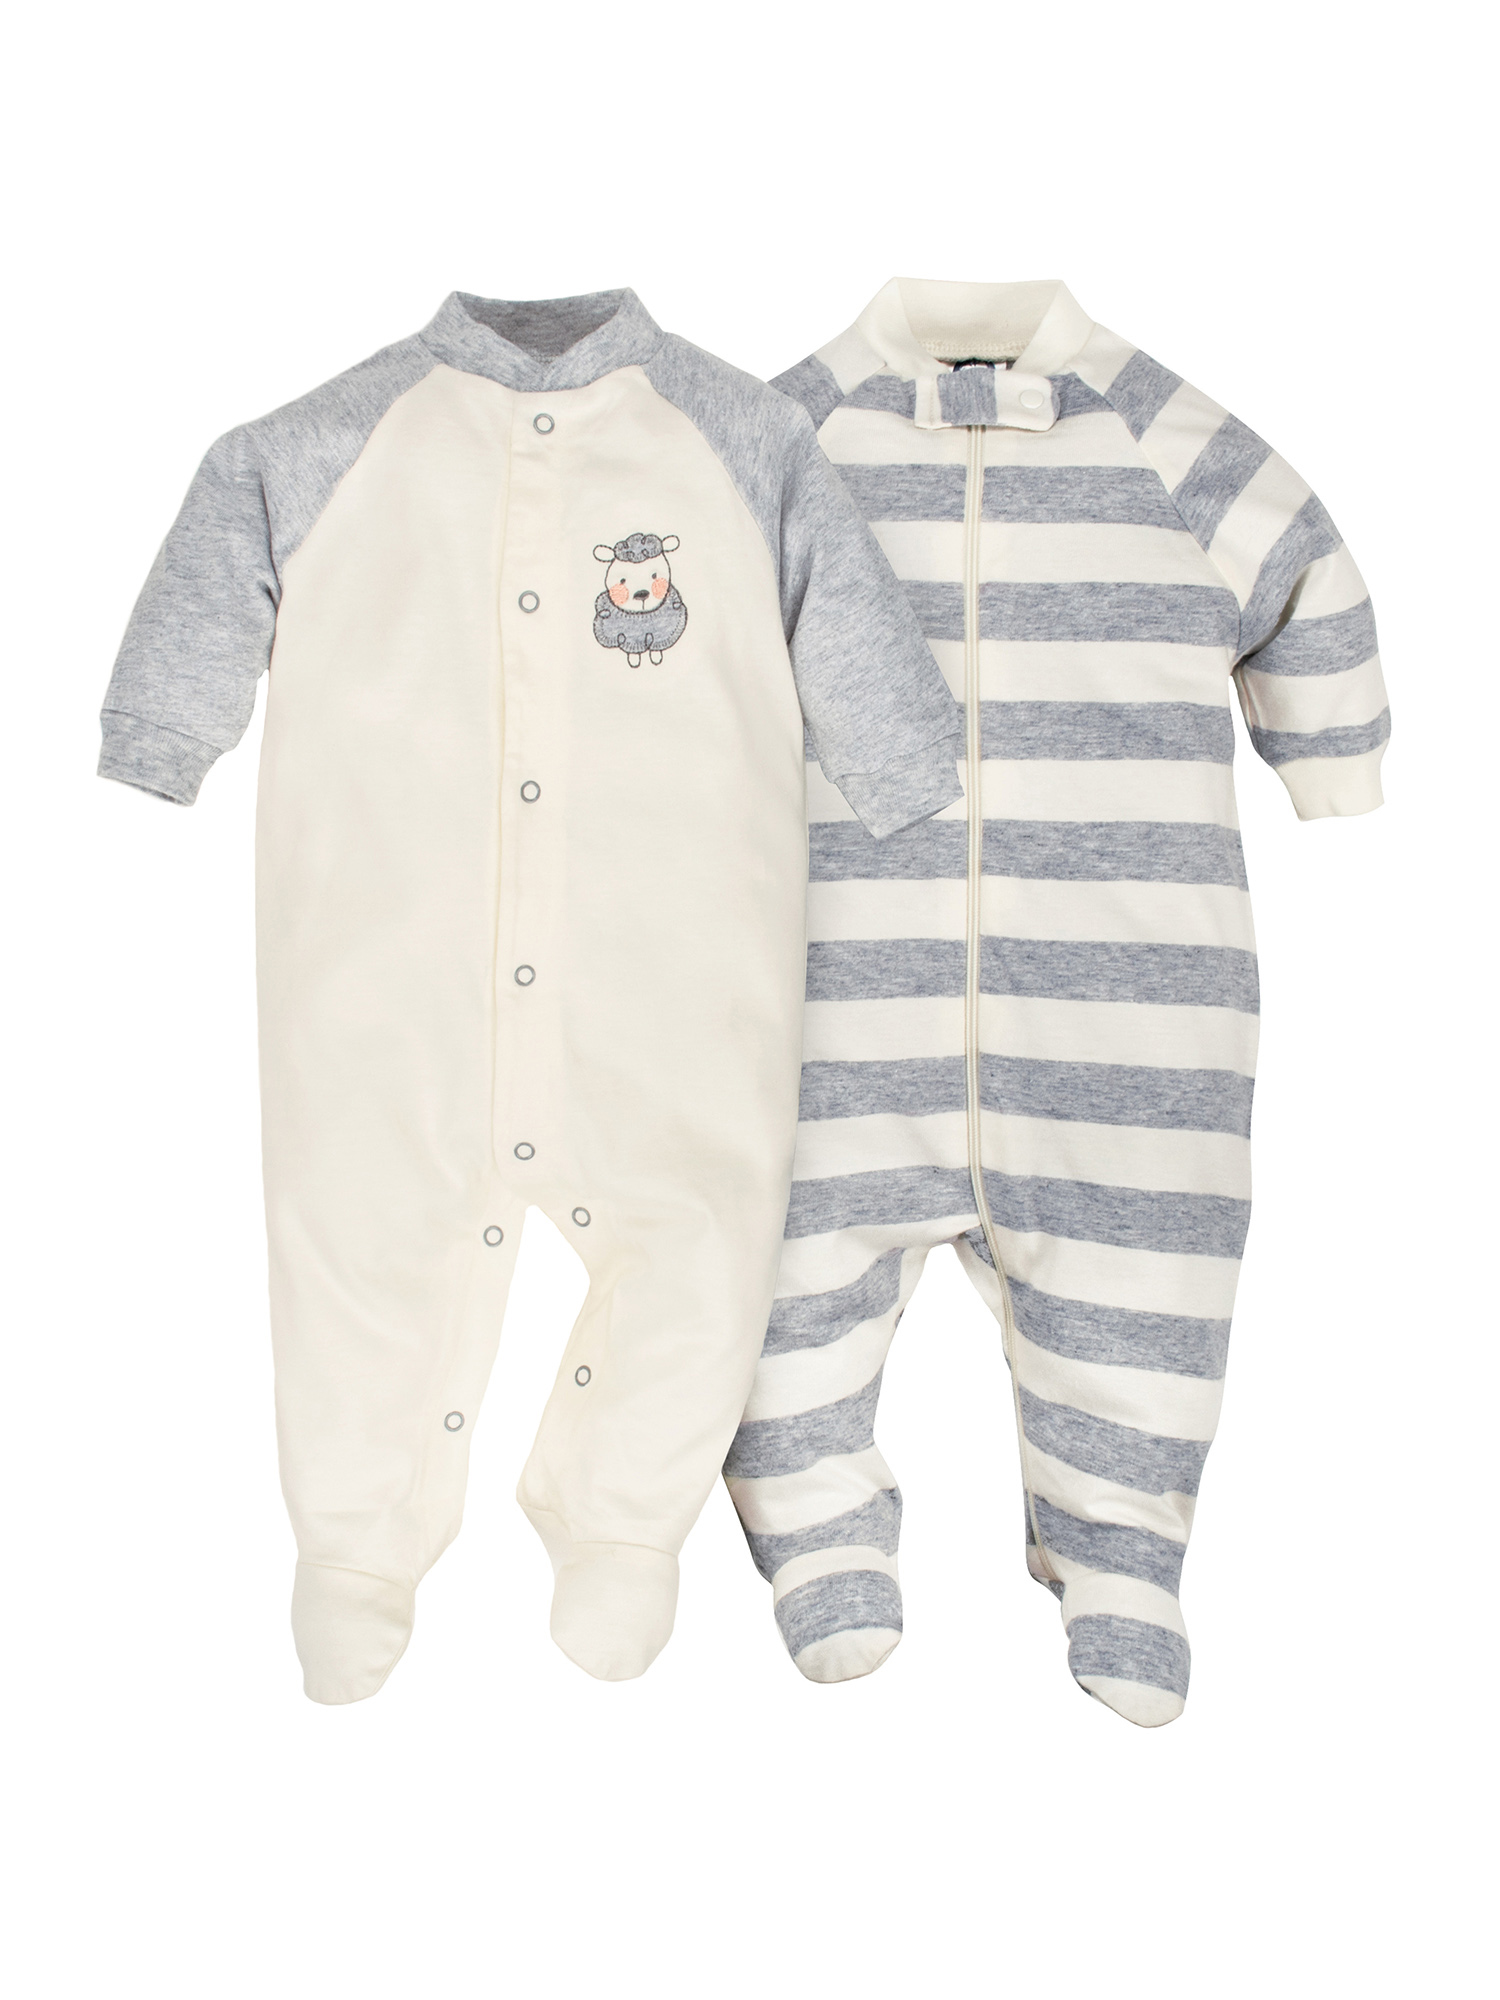 Newborn Baby Boy or Girl Unisex Organic Zip Front Sleep 'N Play, 2-pack